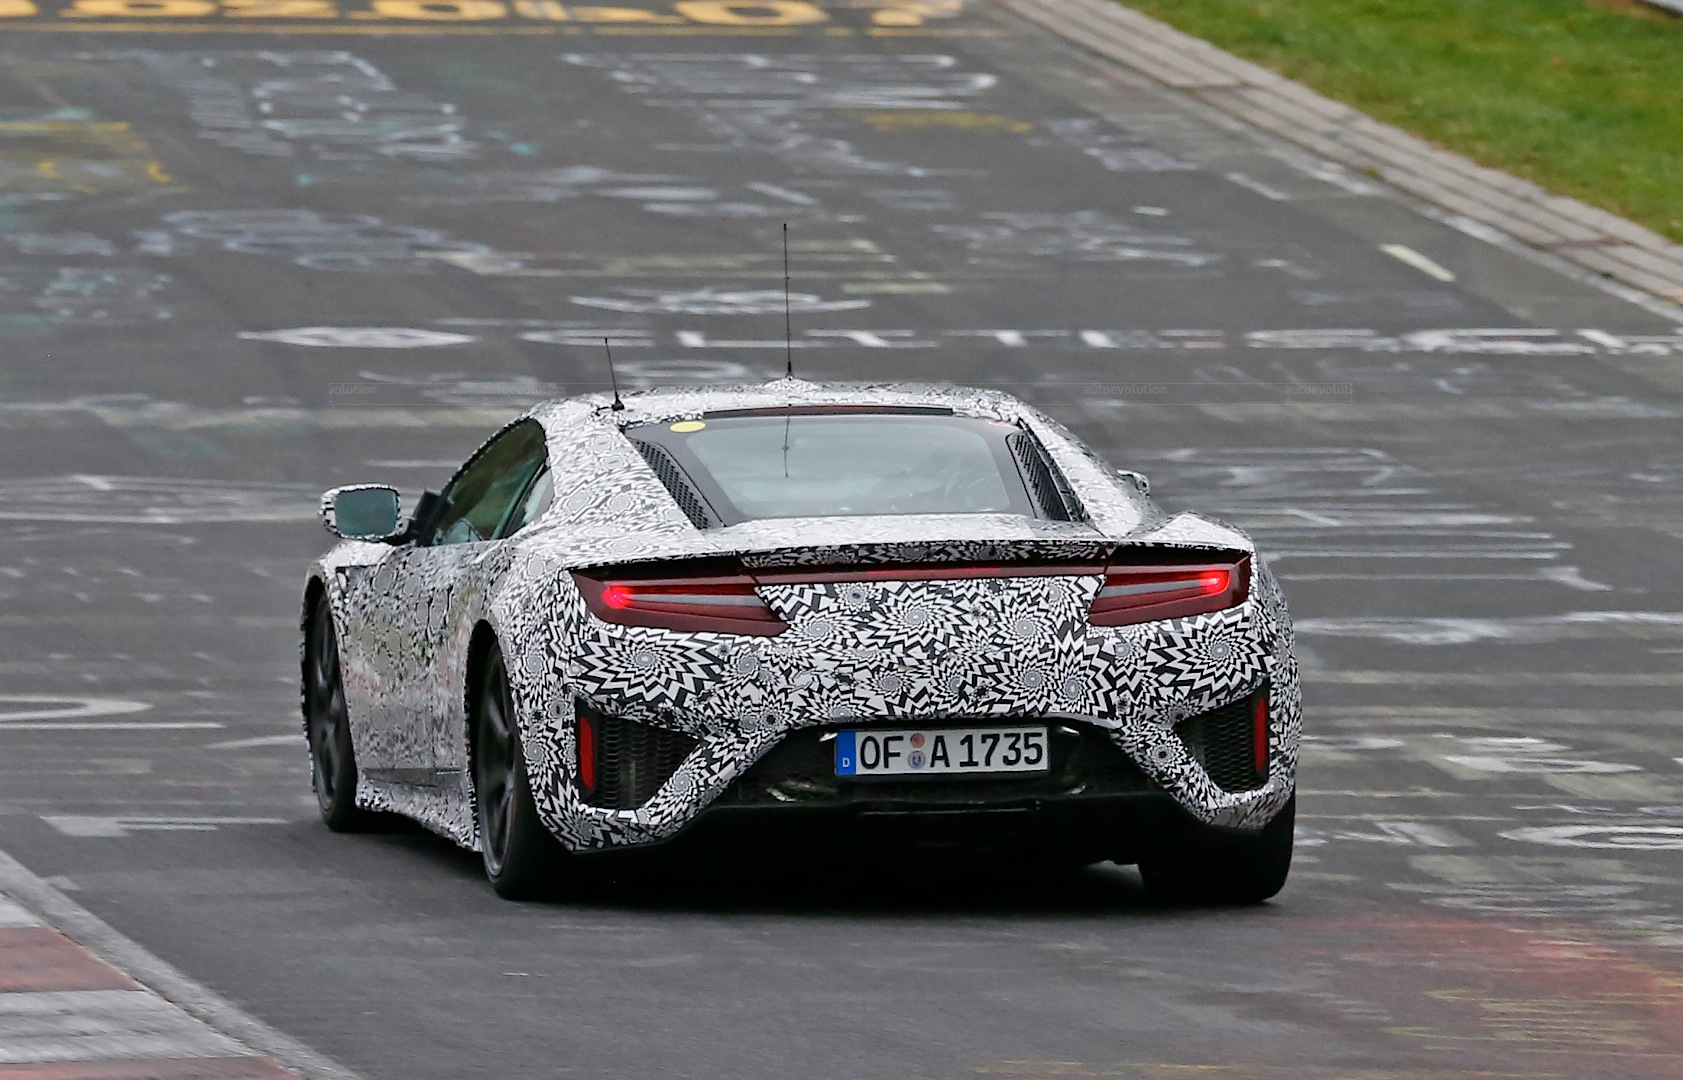 2015 honda nsx spied near the nurburgring yet again autoevolution. Black Bedroom Furniture Sets. Home Design Ideas